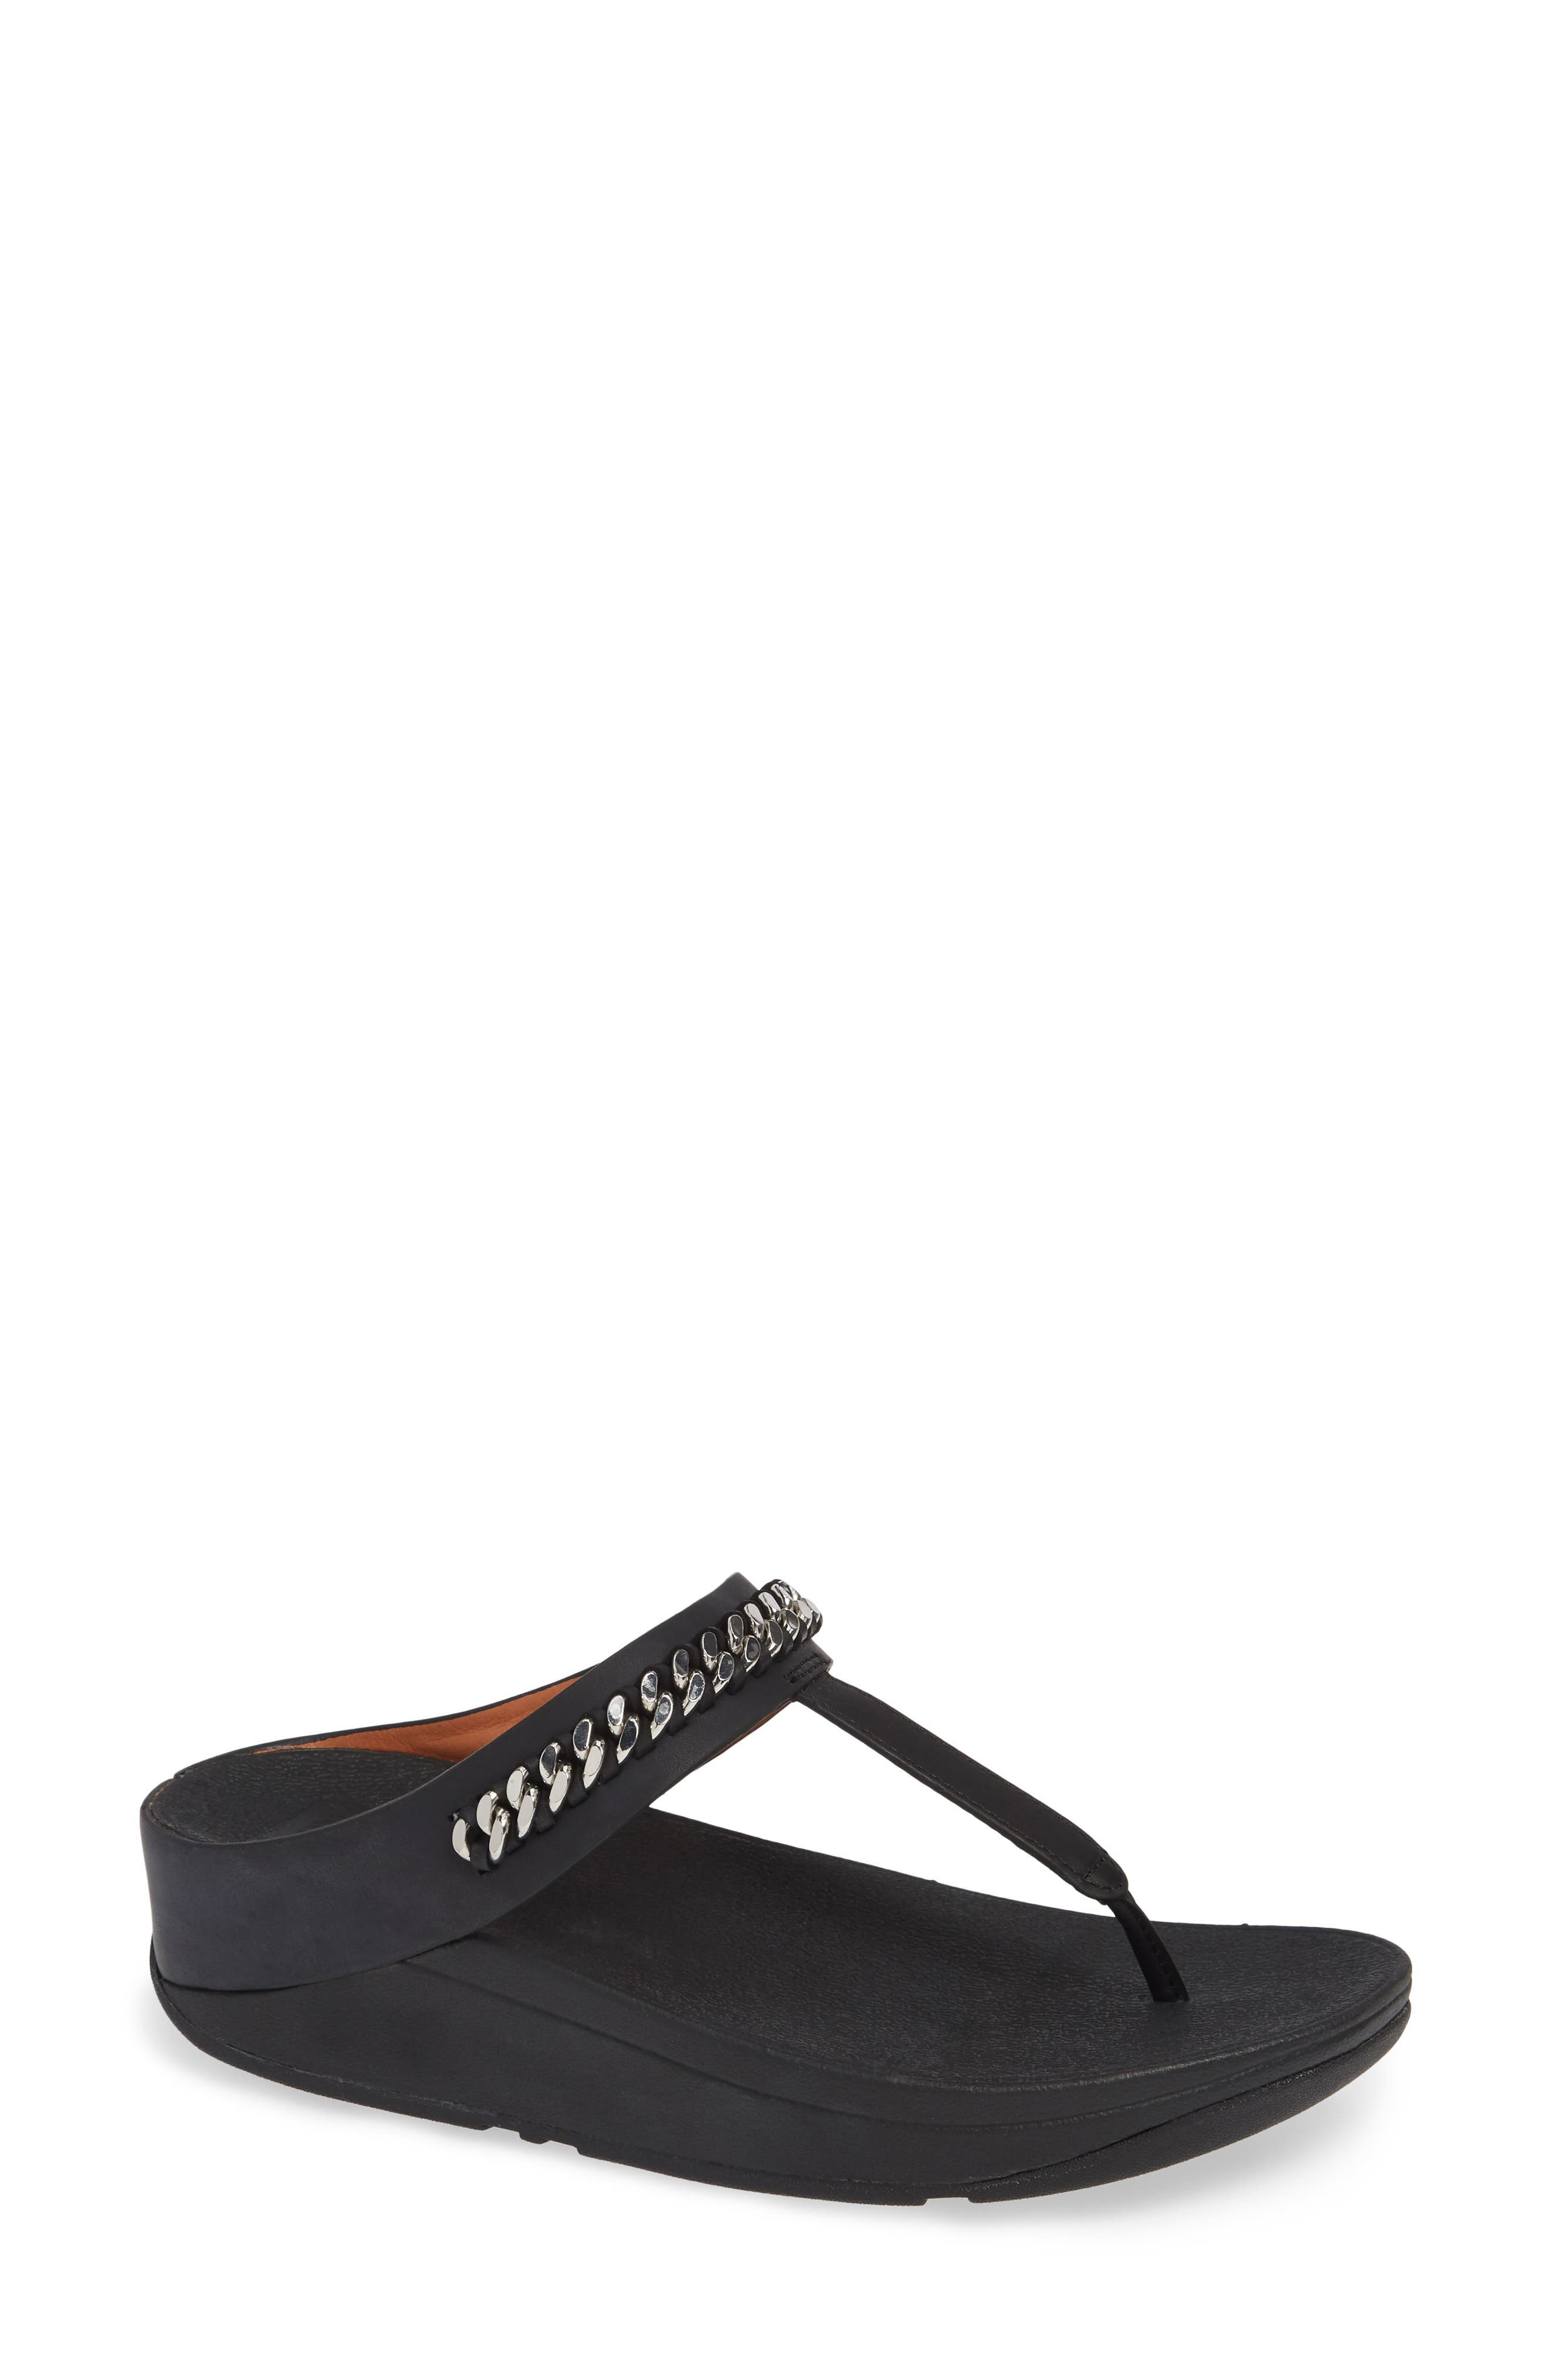 FITFLOP Fino Flip Flop in Black Leather